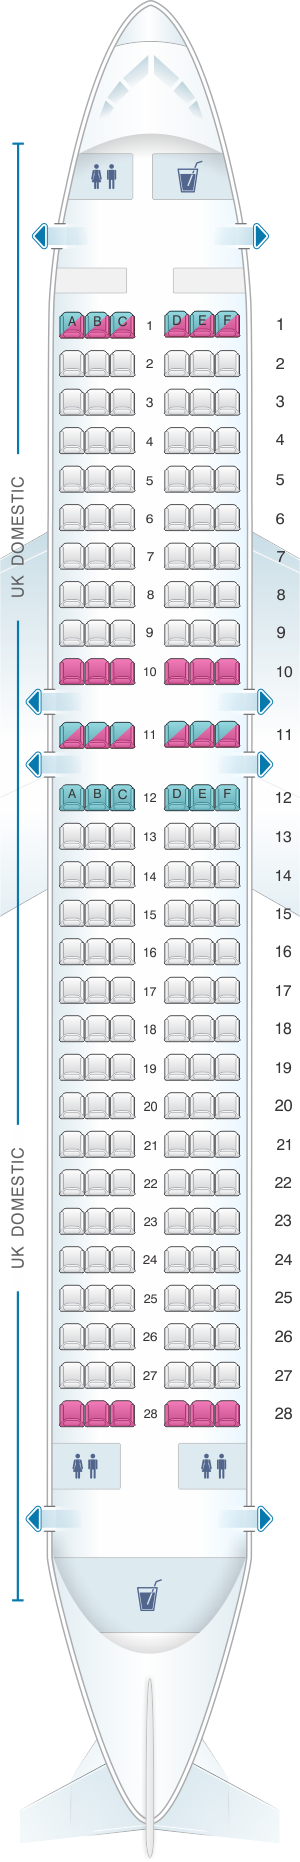 Seat map for British Airways Airbus A320 Domestic Layout